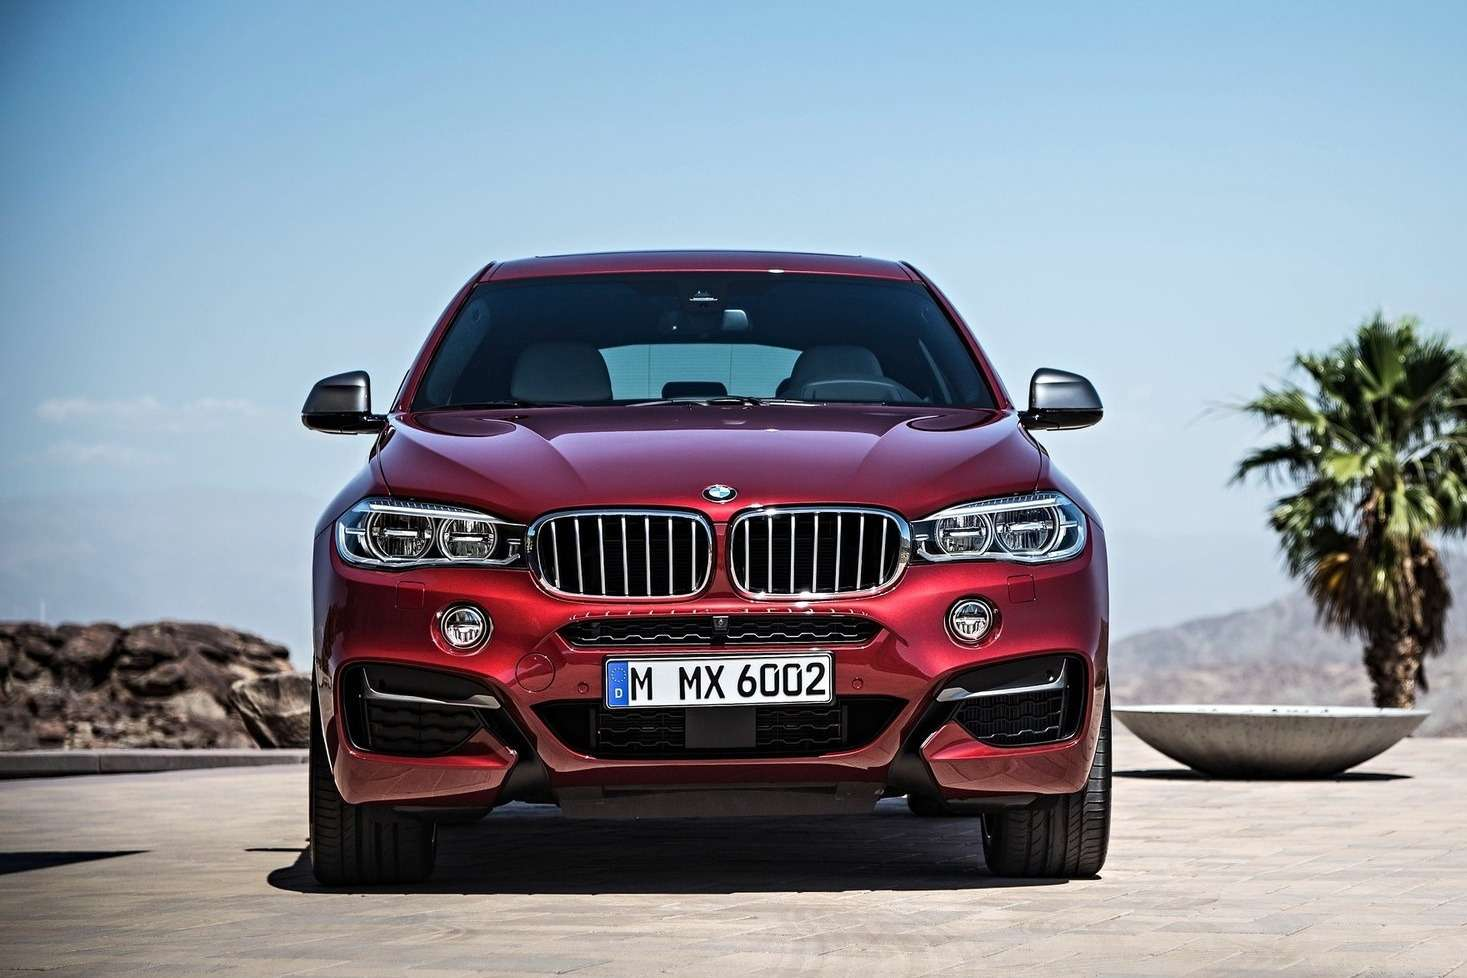 BMW-X6_2015_1600x1200_wallpaper_2e